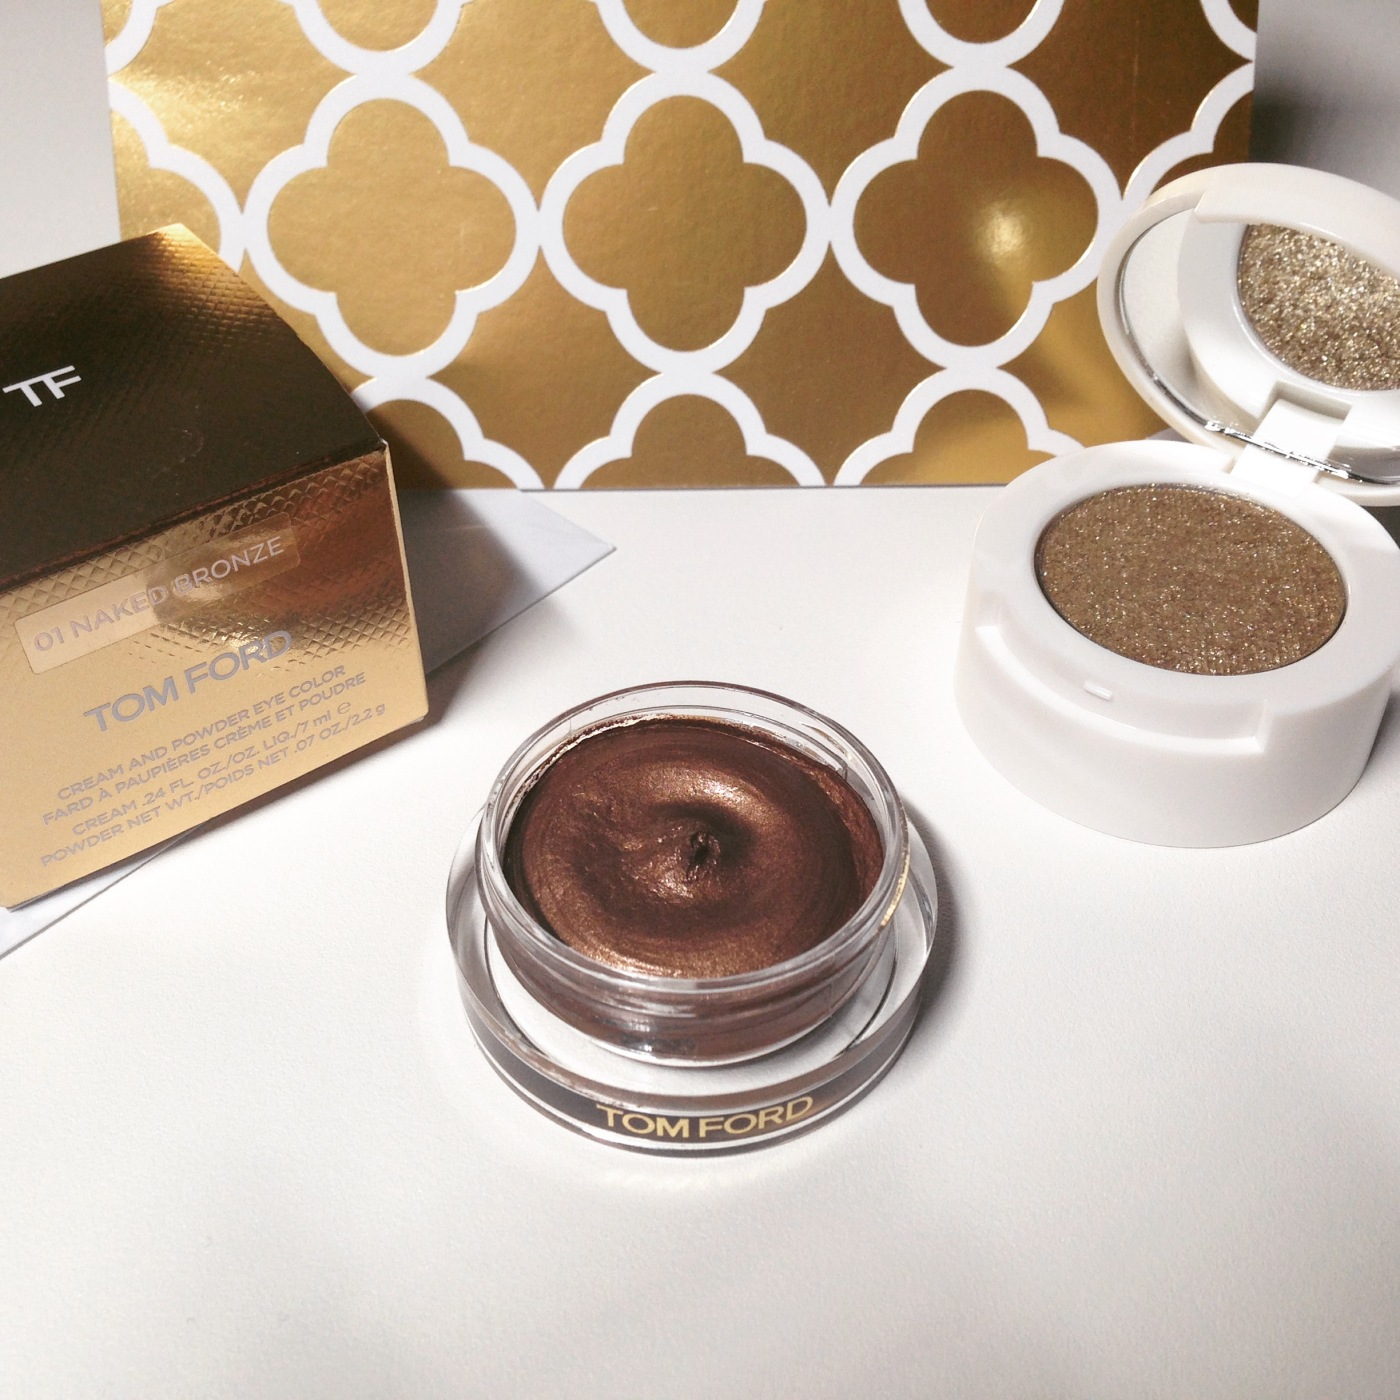 6c813170c5 I was never big on cream eyeshadows, mainly because they would always  crease on my eyes, and fairly quickly. But formulations have changed a lot  since I ...